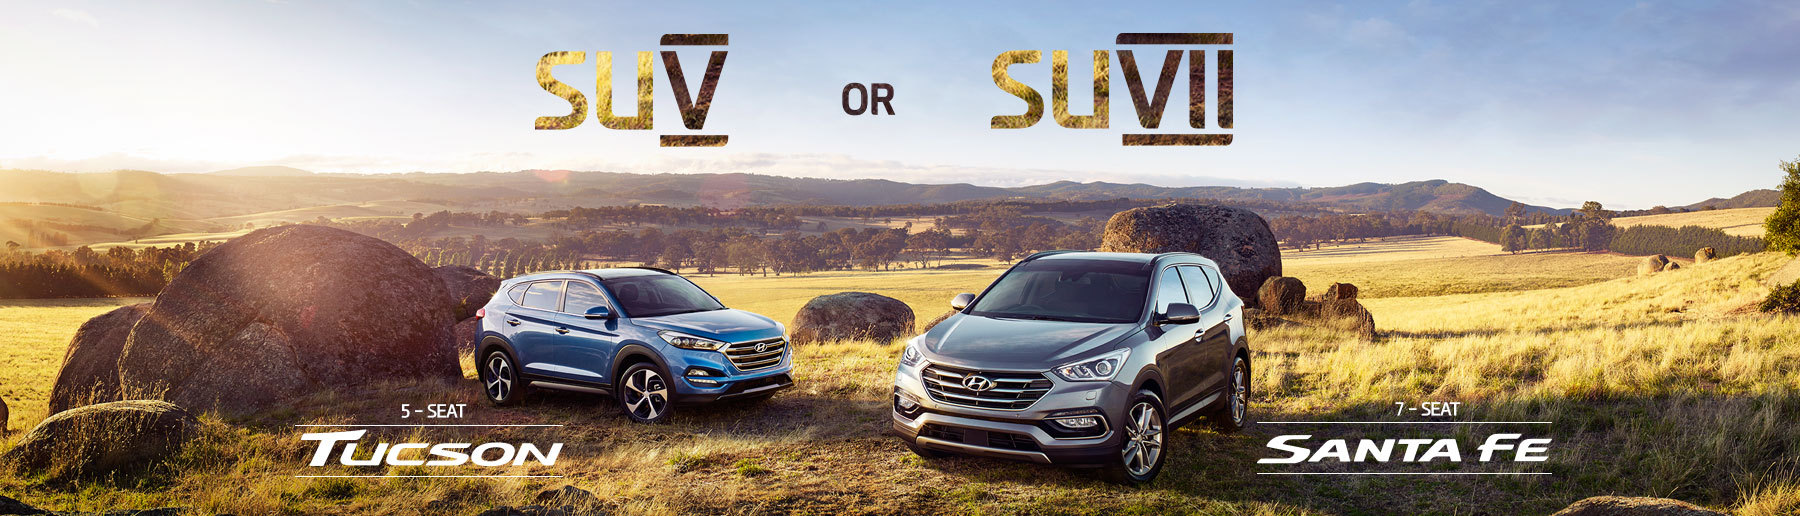 New Hyundai Tucson and Santa Fe